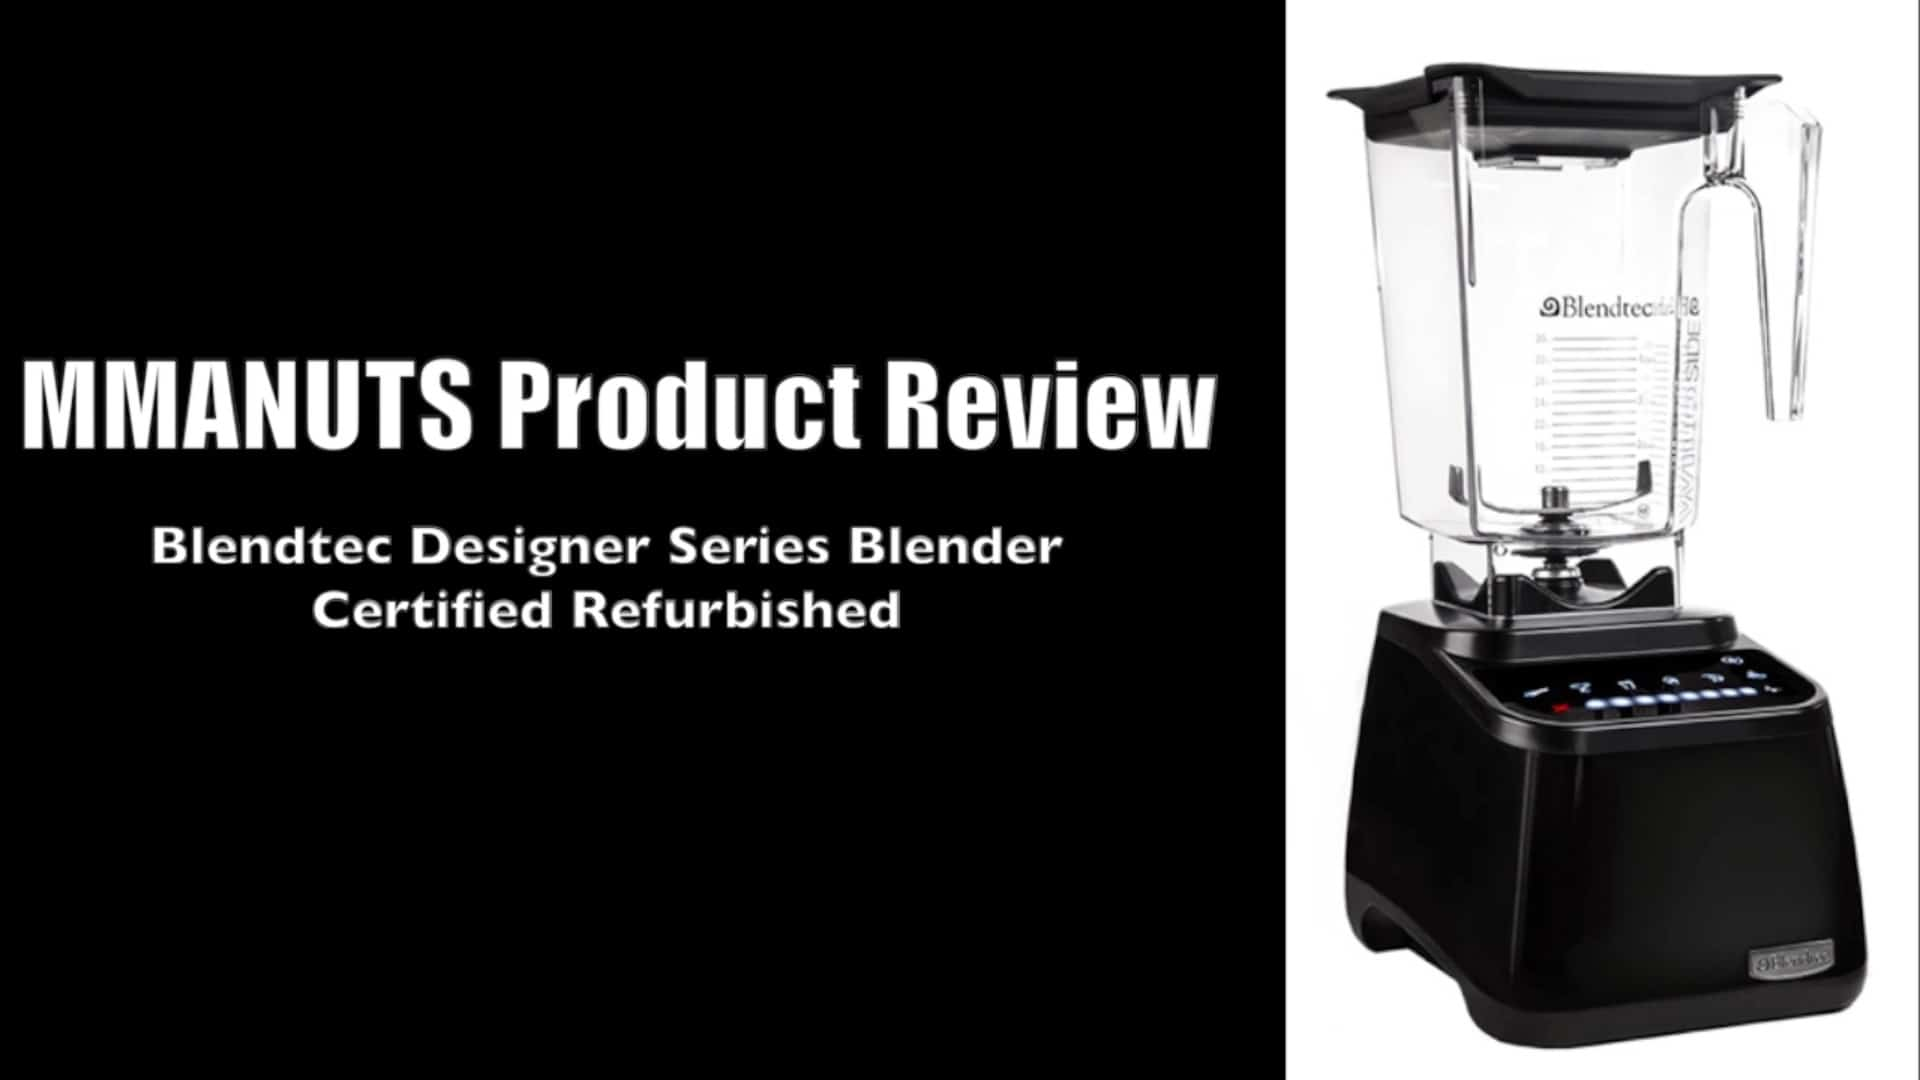 Blendtec Designer Series Blender Review